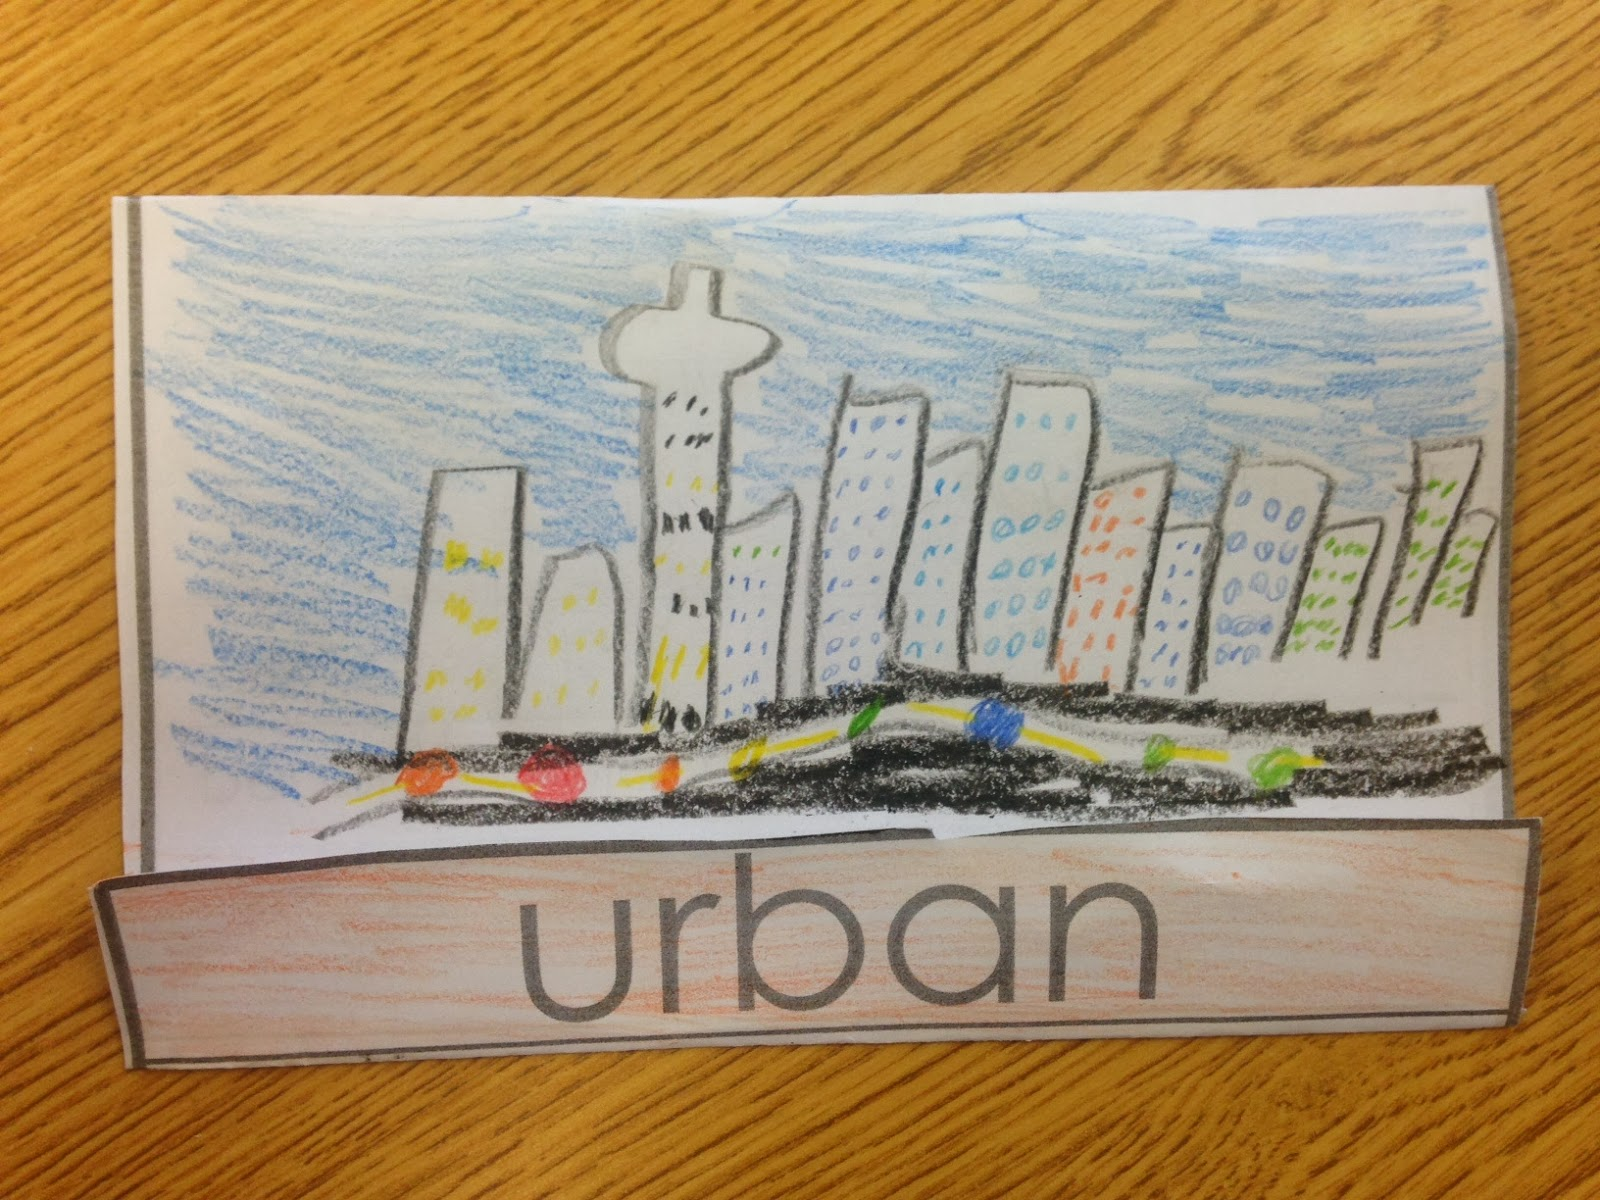 Rural Urban And Suburban Communities Fun